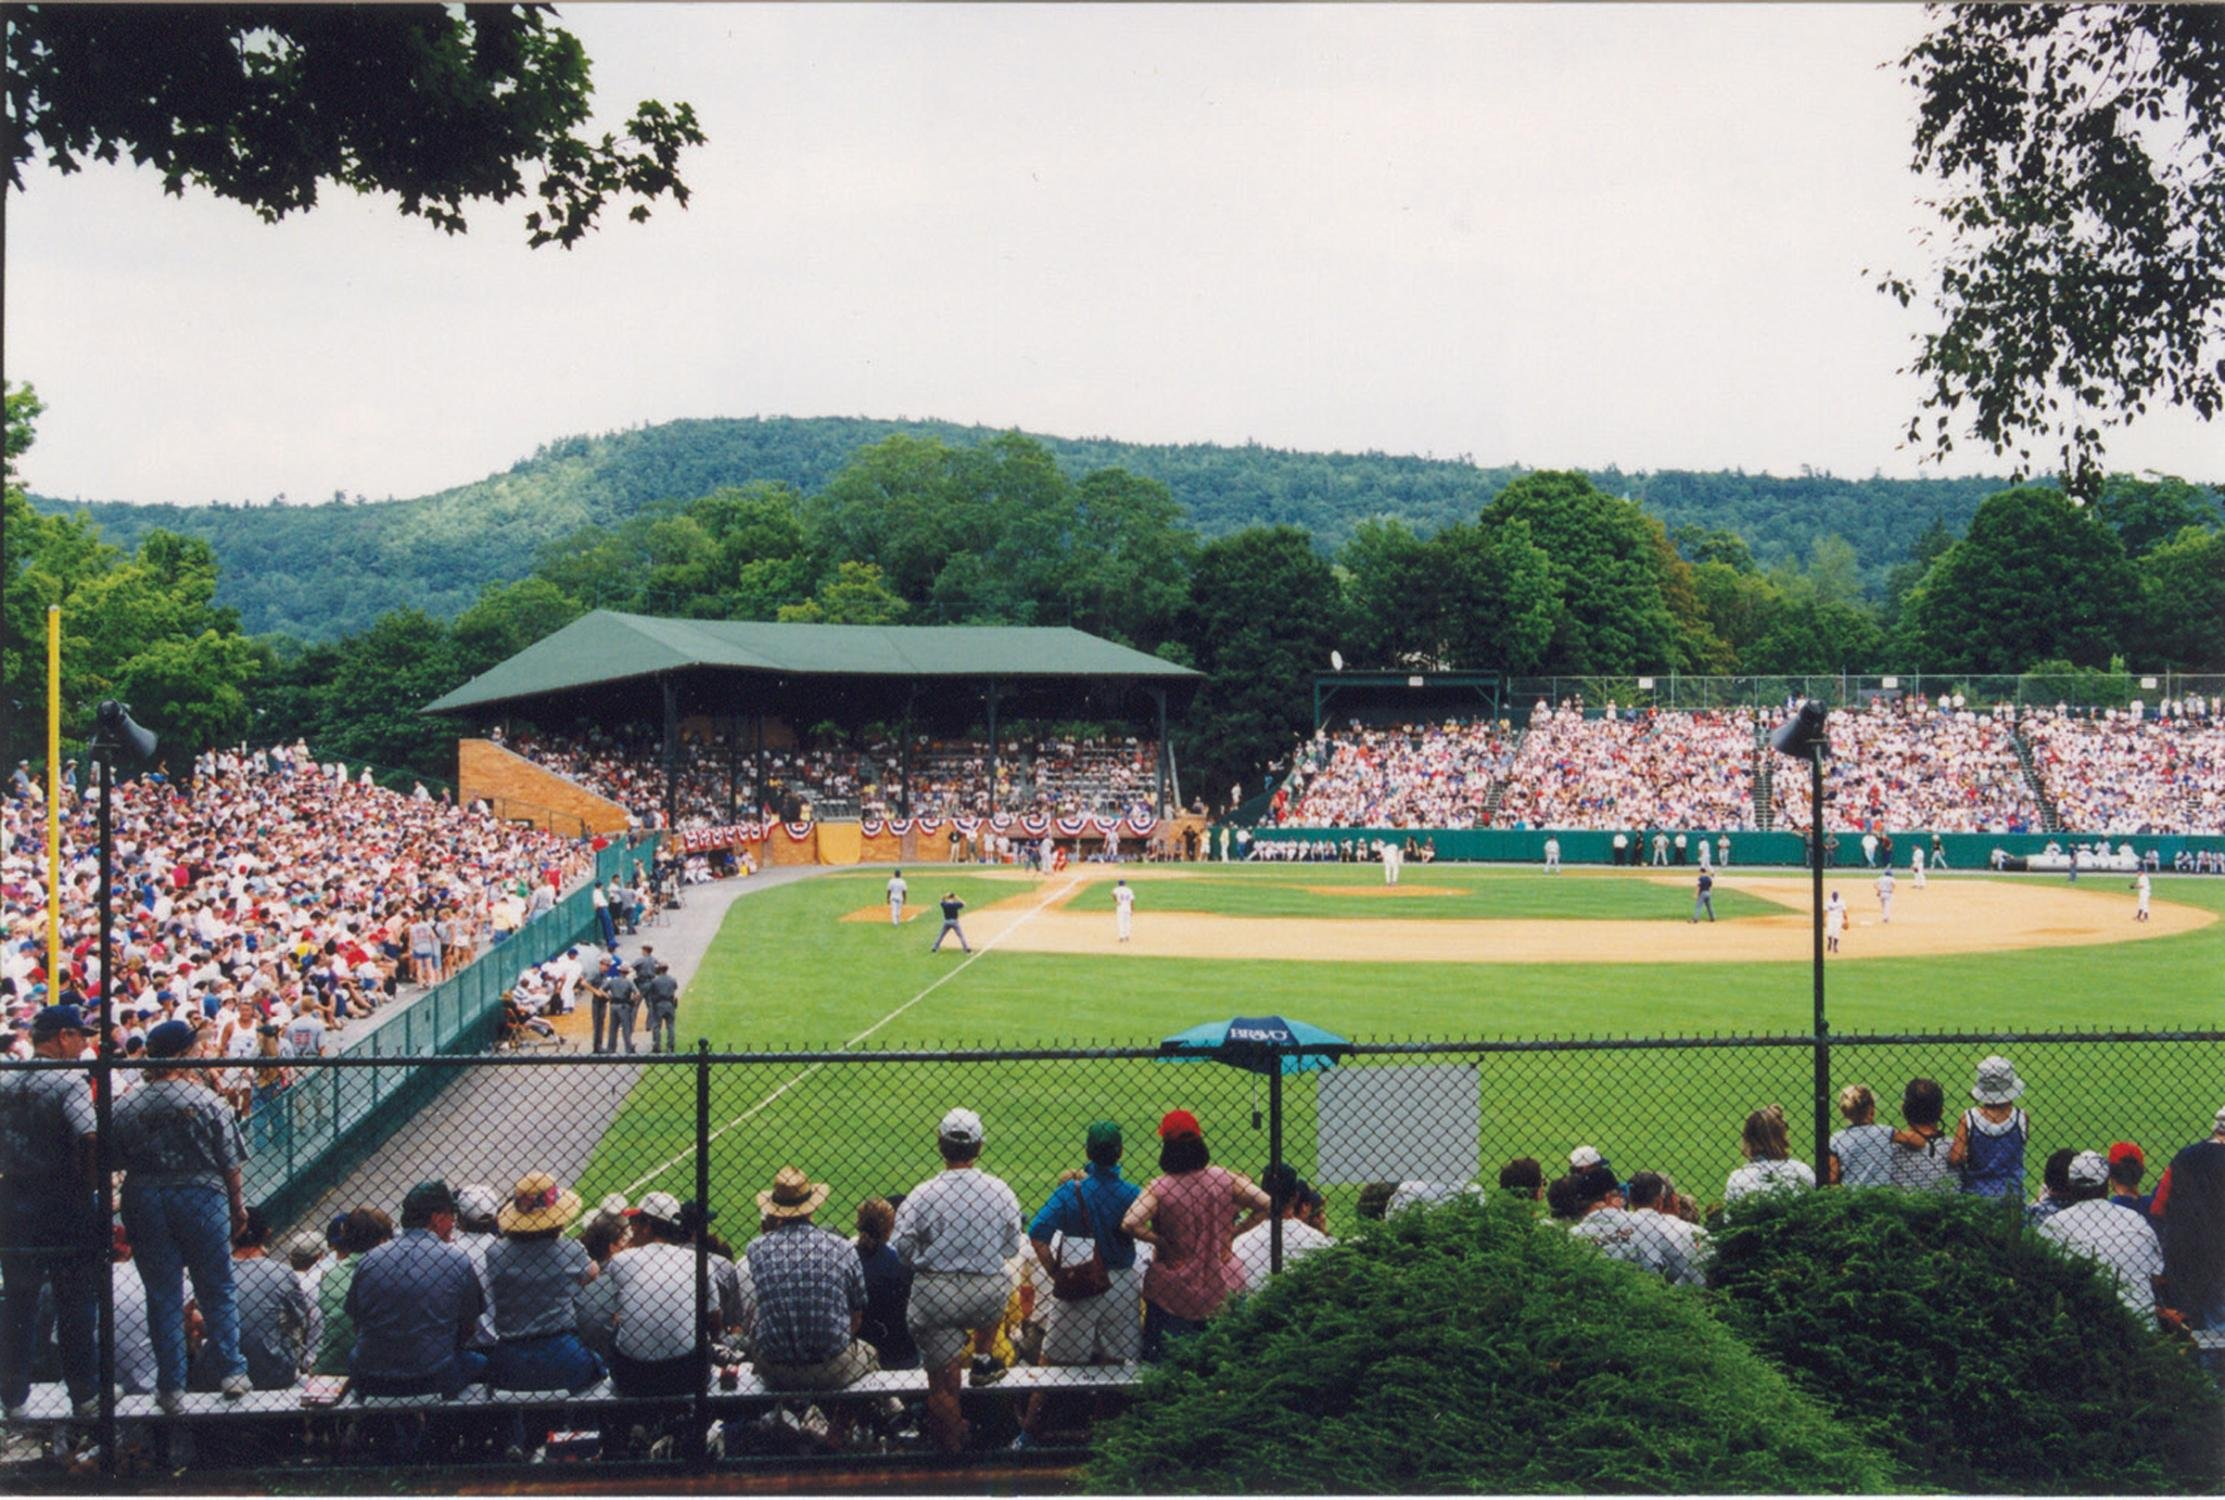 View from behind the left field fence during one of the many games played each year.